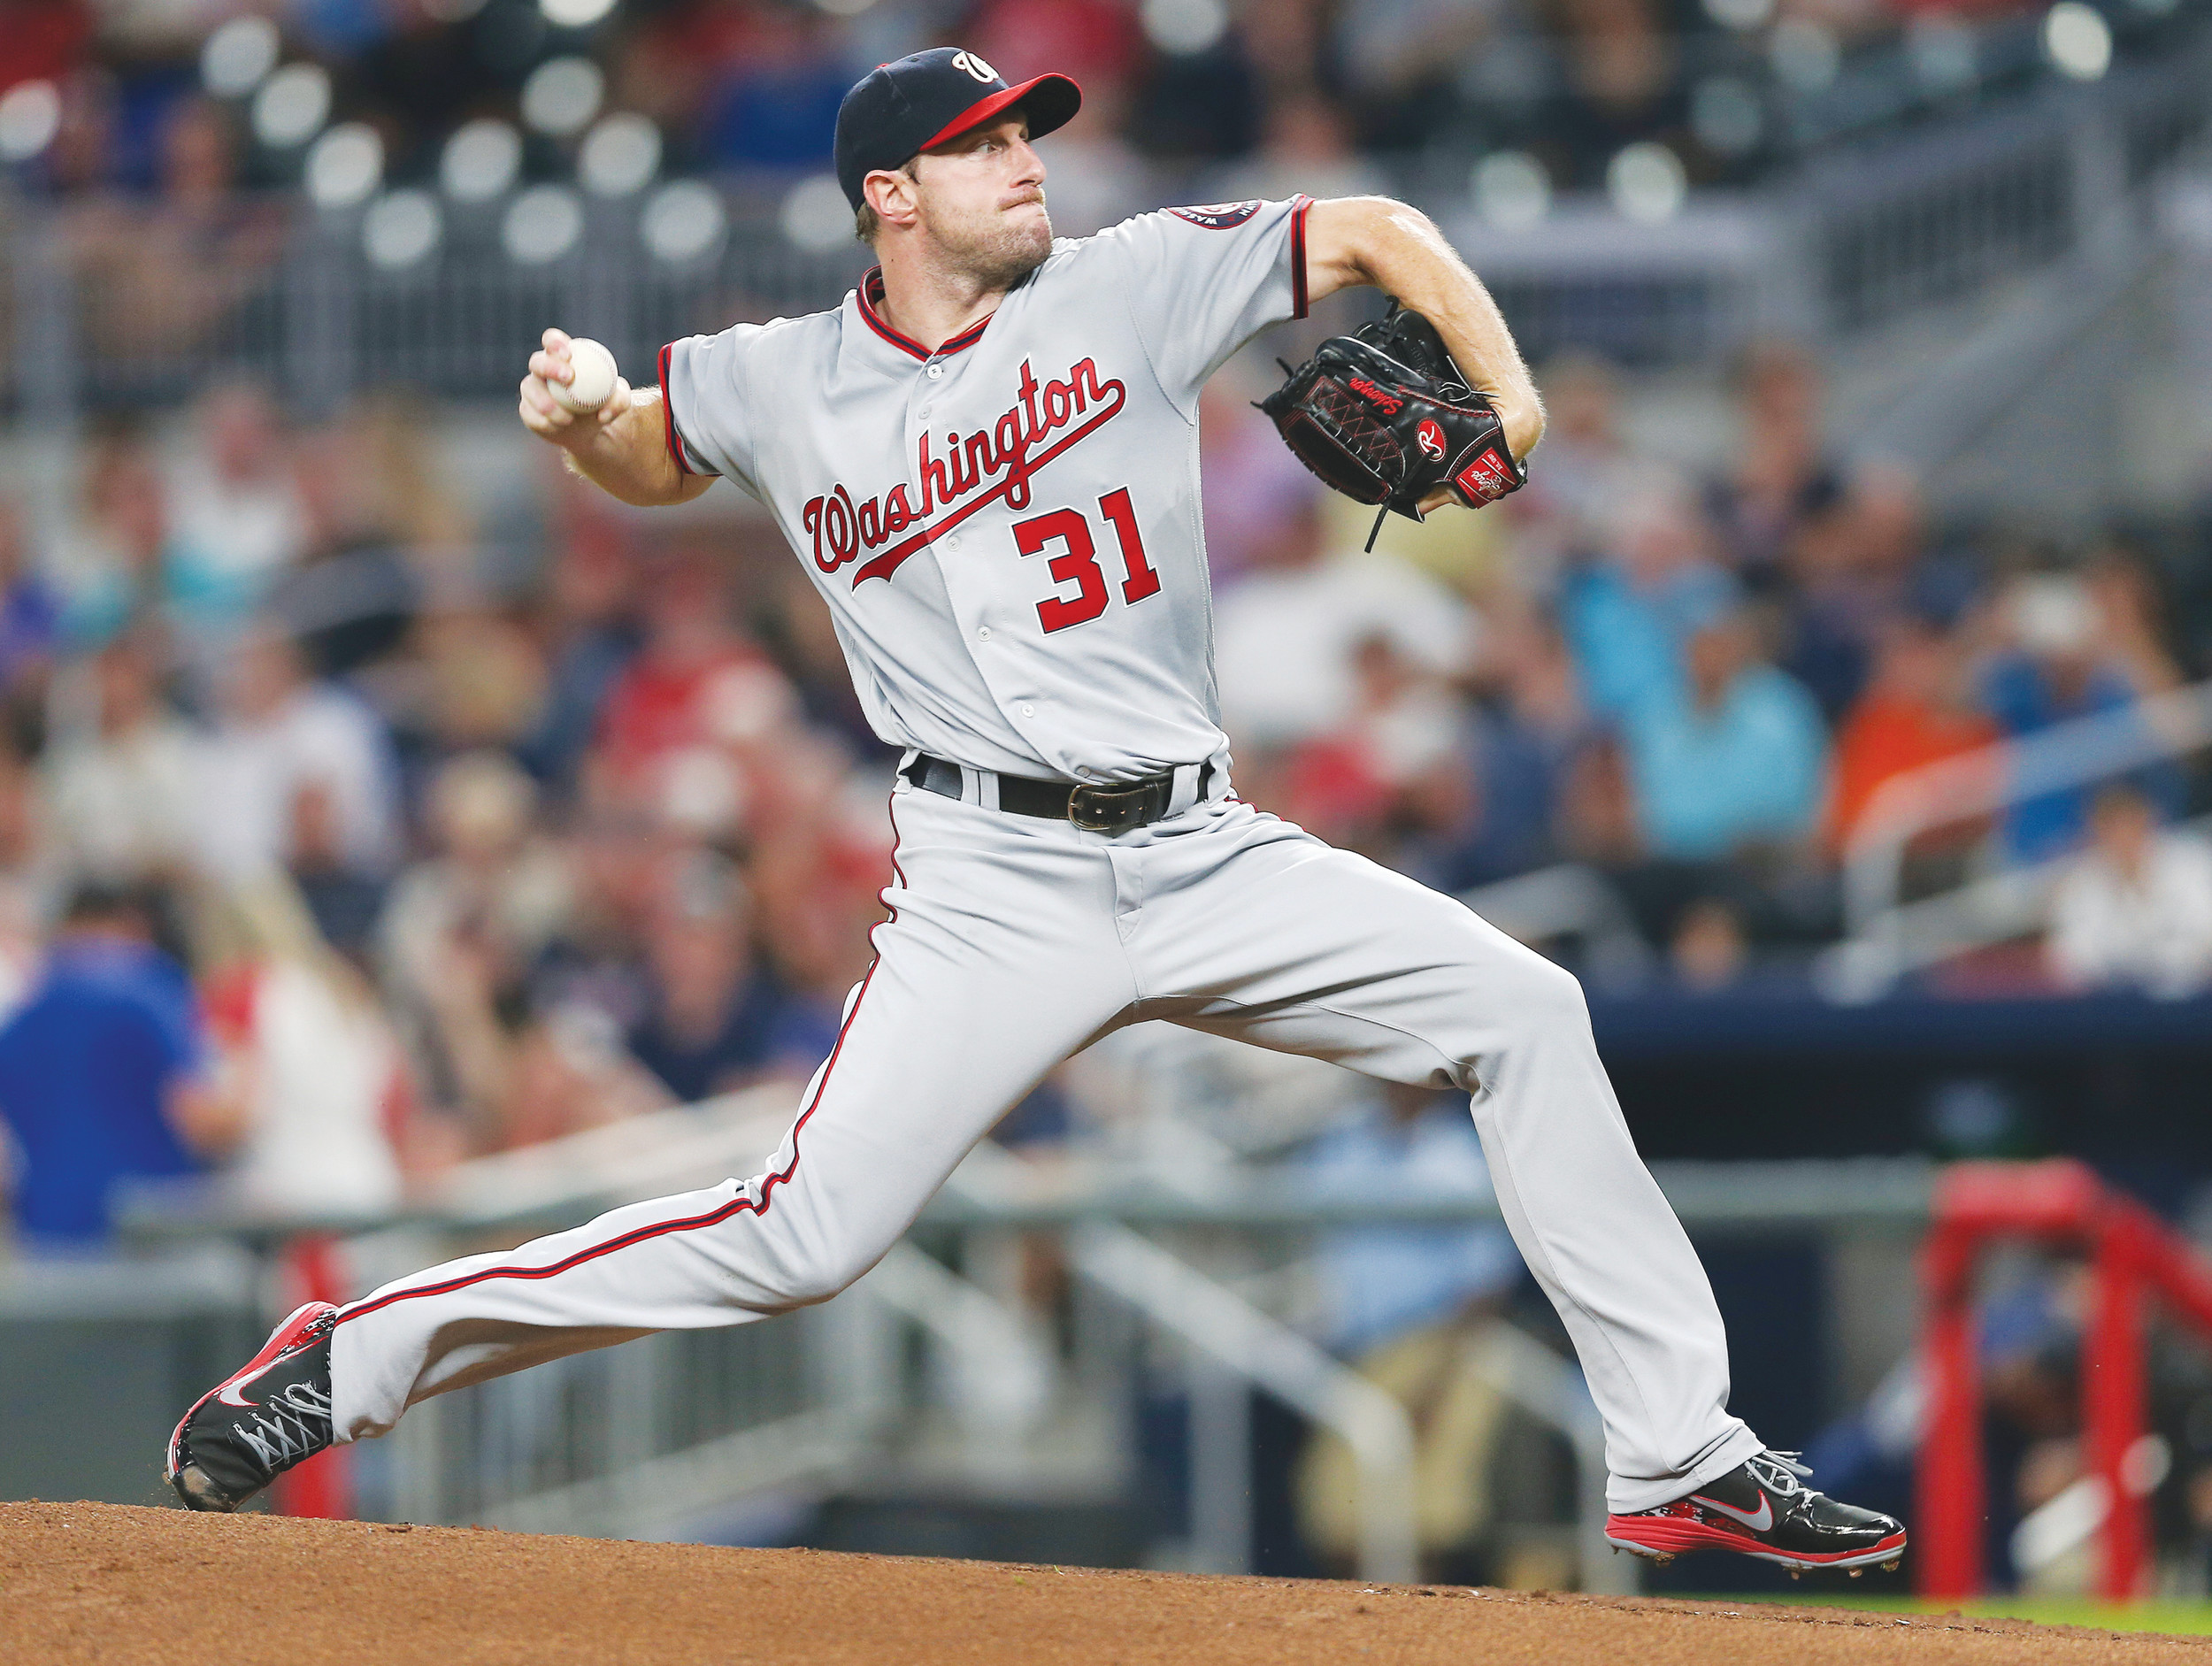 Washington pitcher Max Scherzer won his third Cy Young Award, winning for the second straight year in the National League.